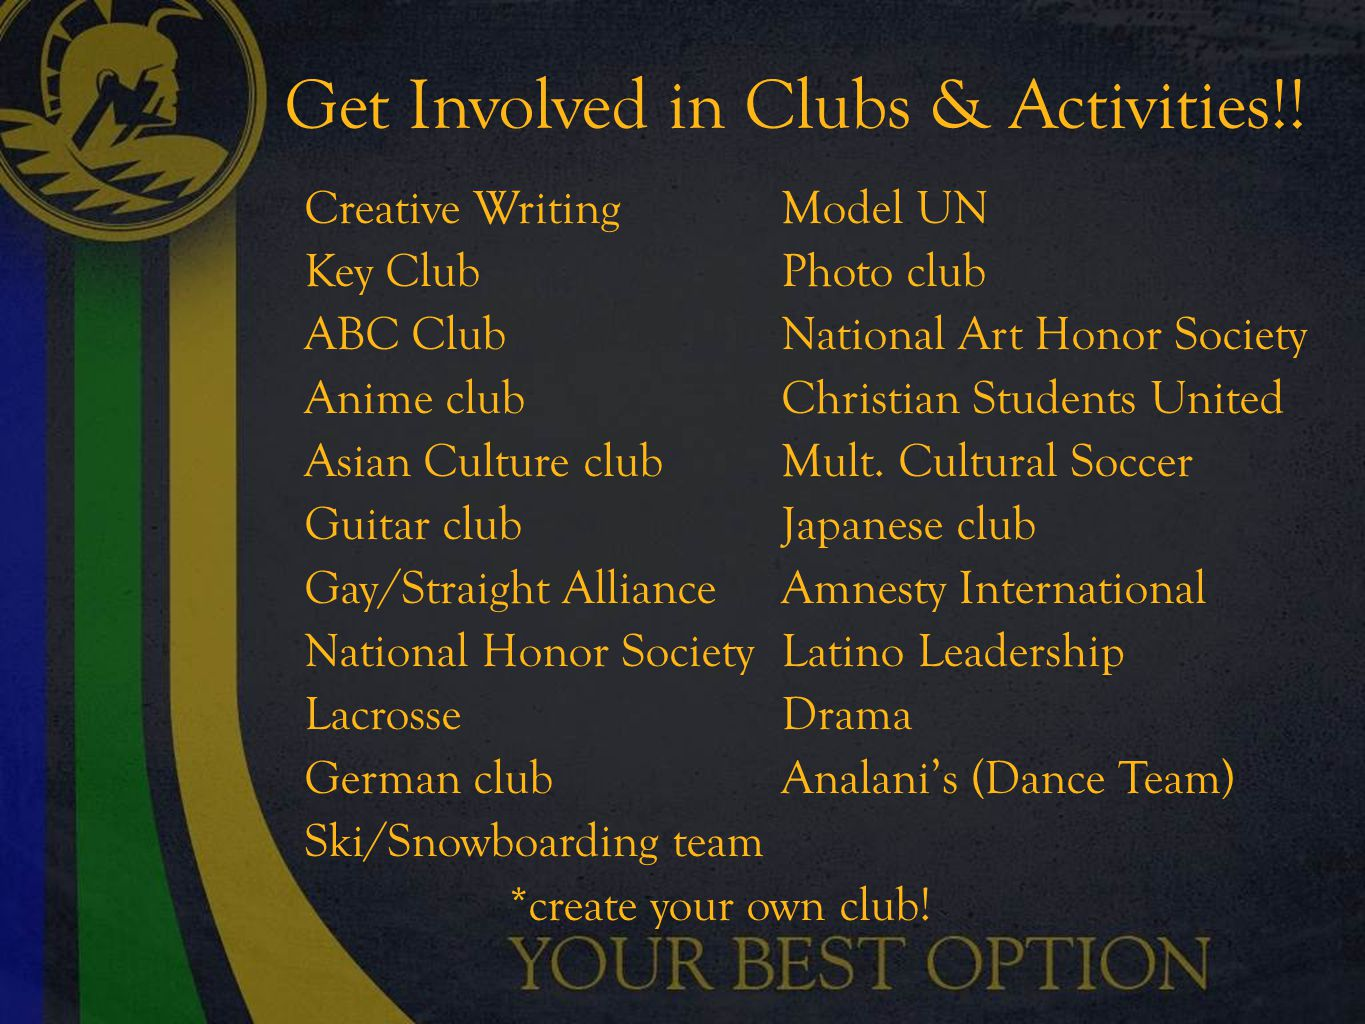 Get Involved in Clubs & Activities!.